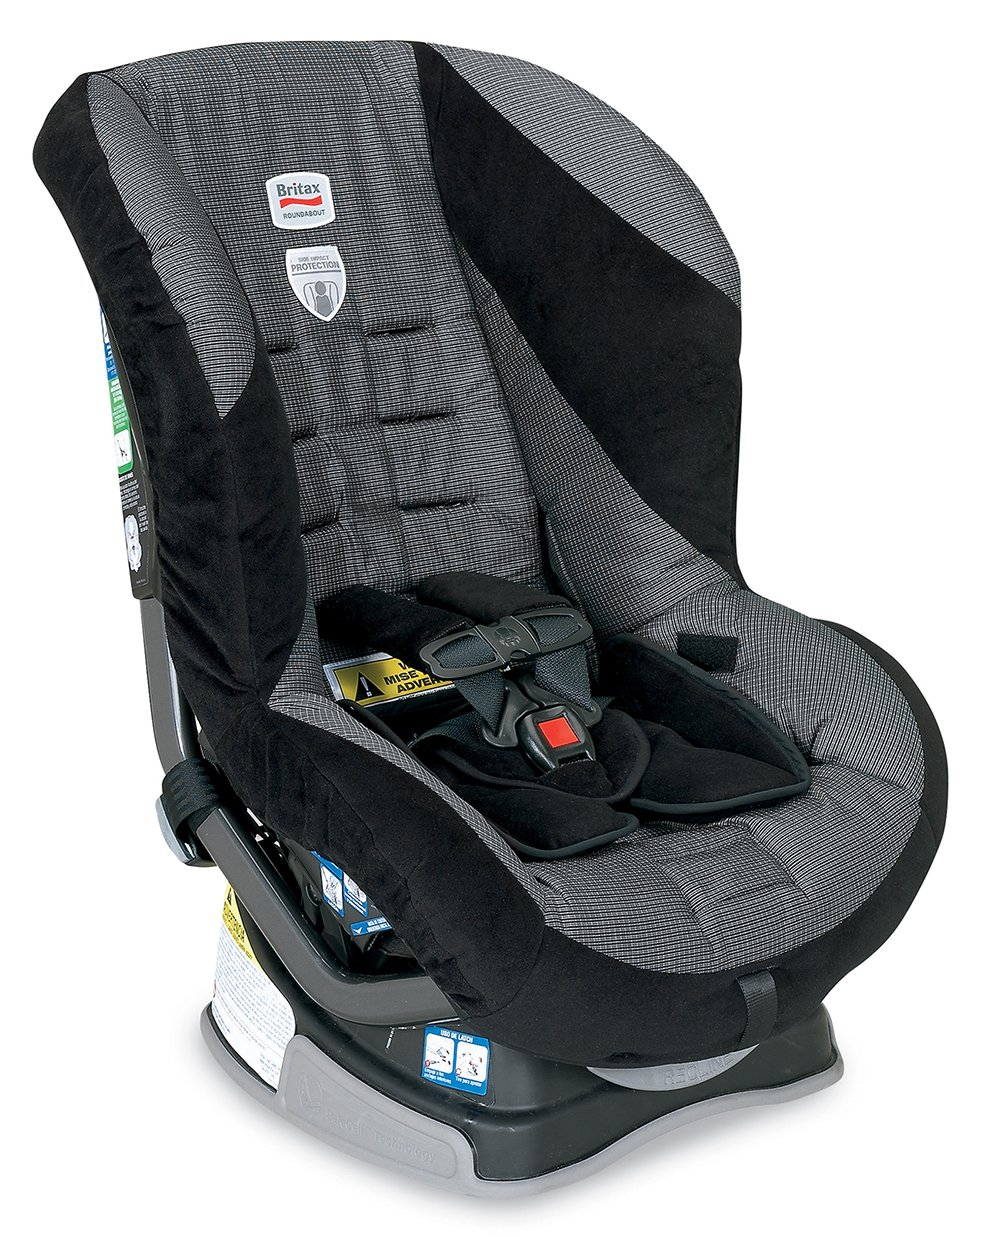 Amazon.com: Britax Roundabout G4 Convertible Car Seat, Onyx (Prior Model):  Baby